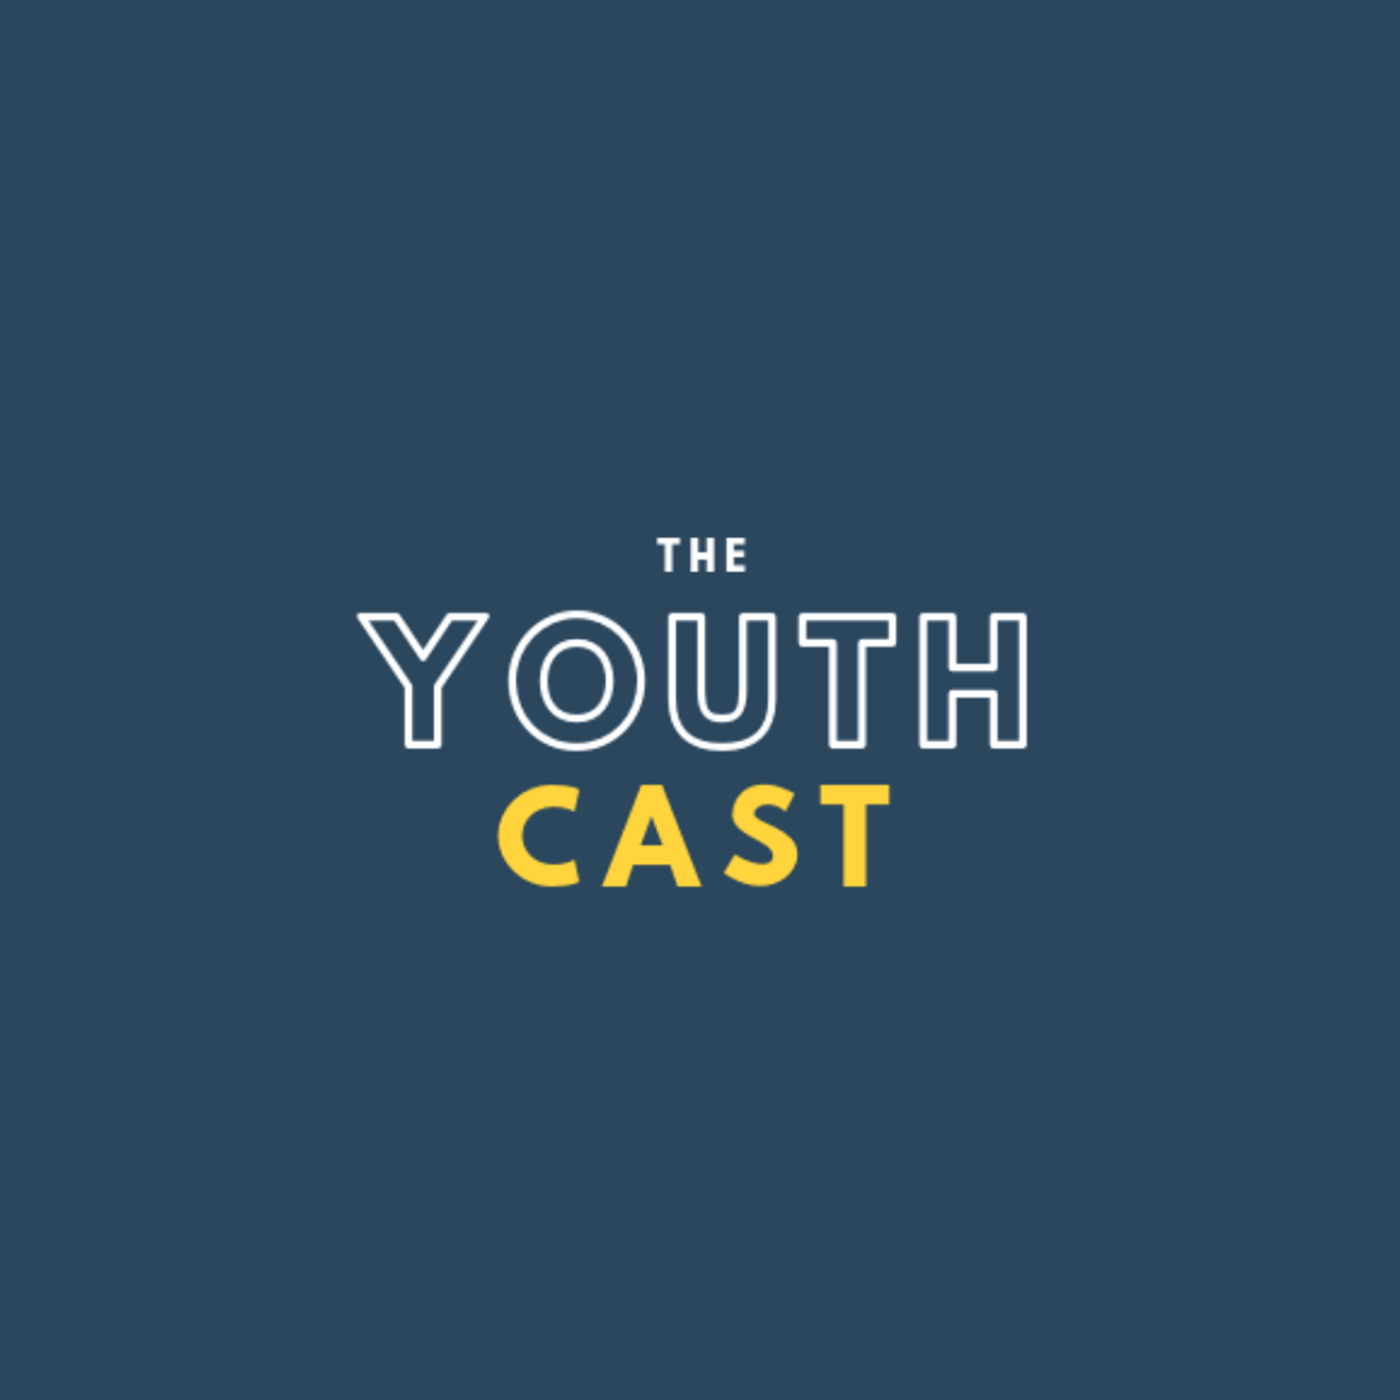 Youthcast 1400 Logo.png